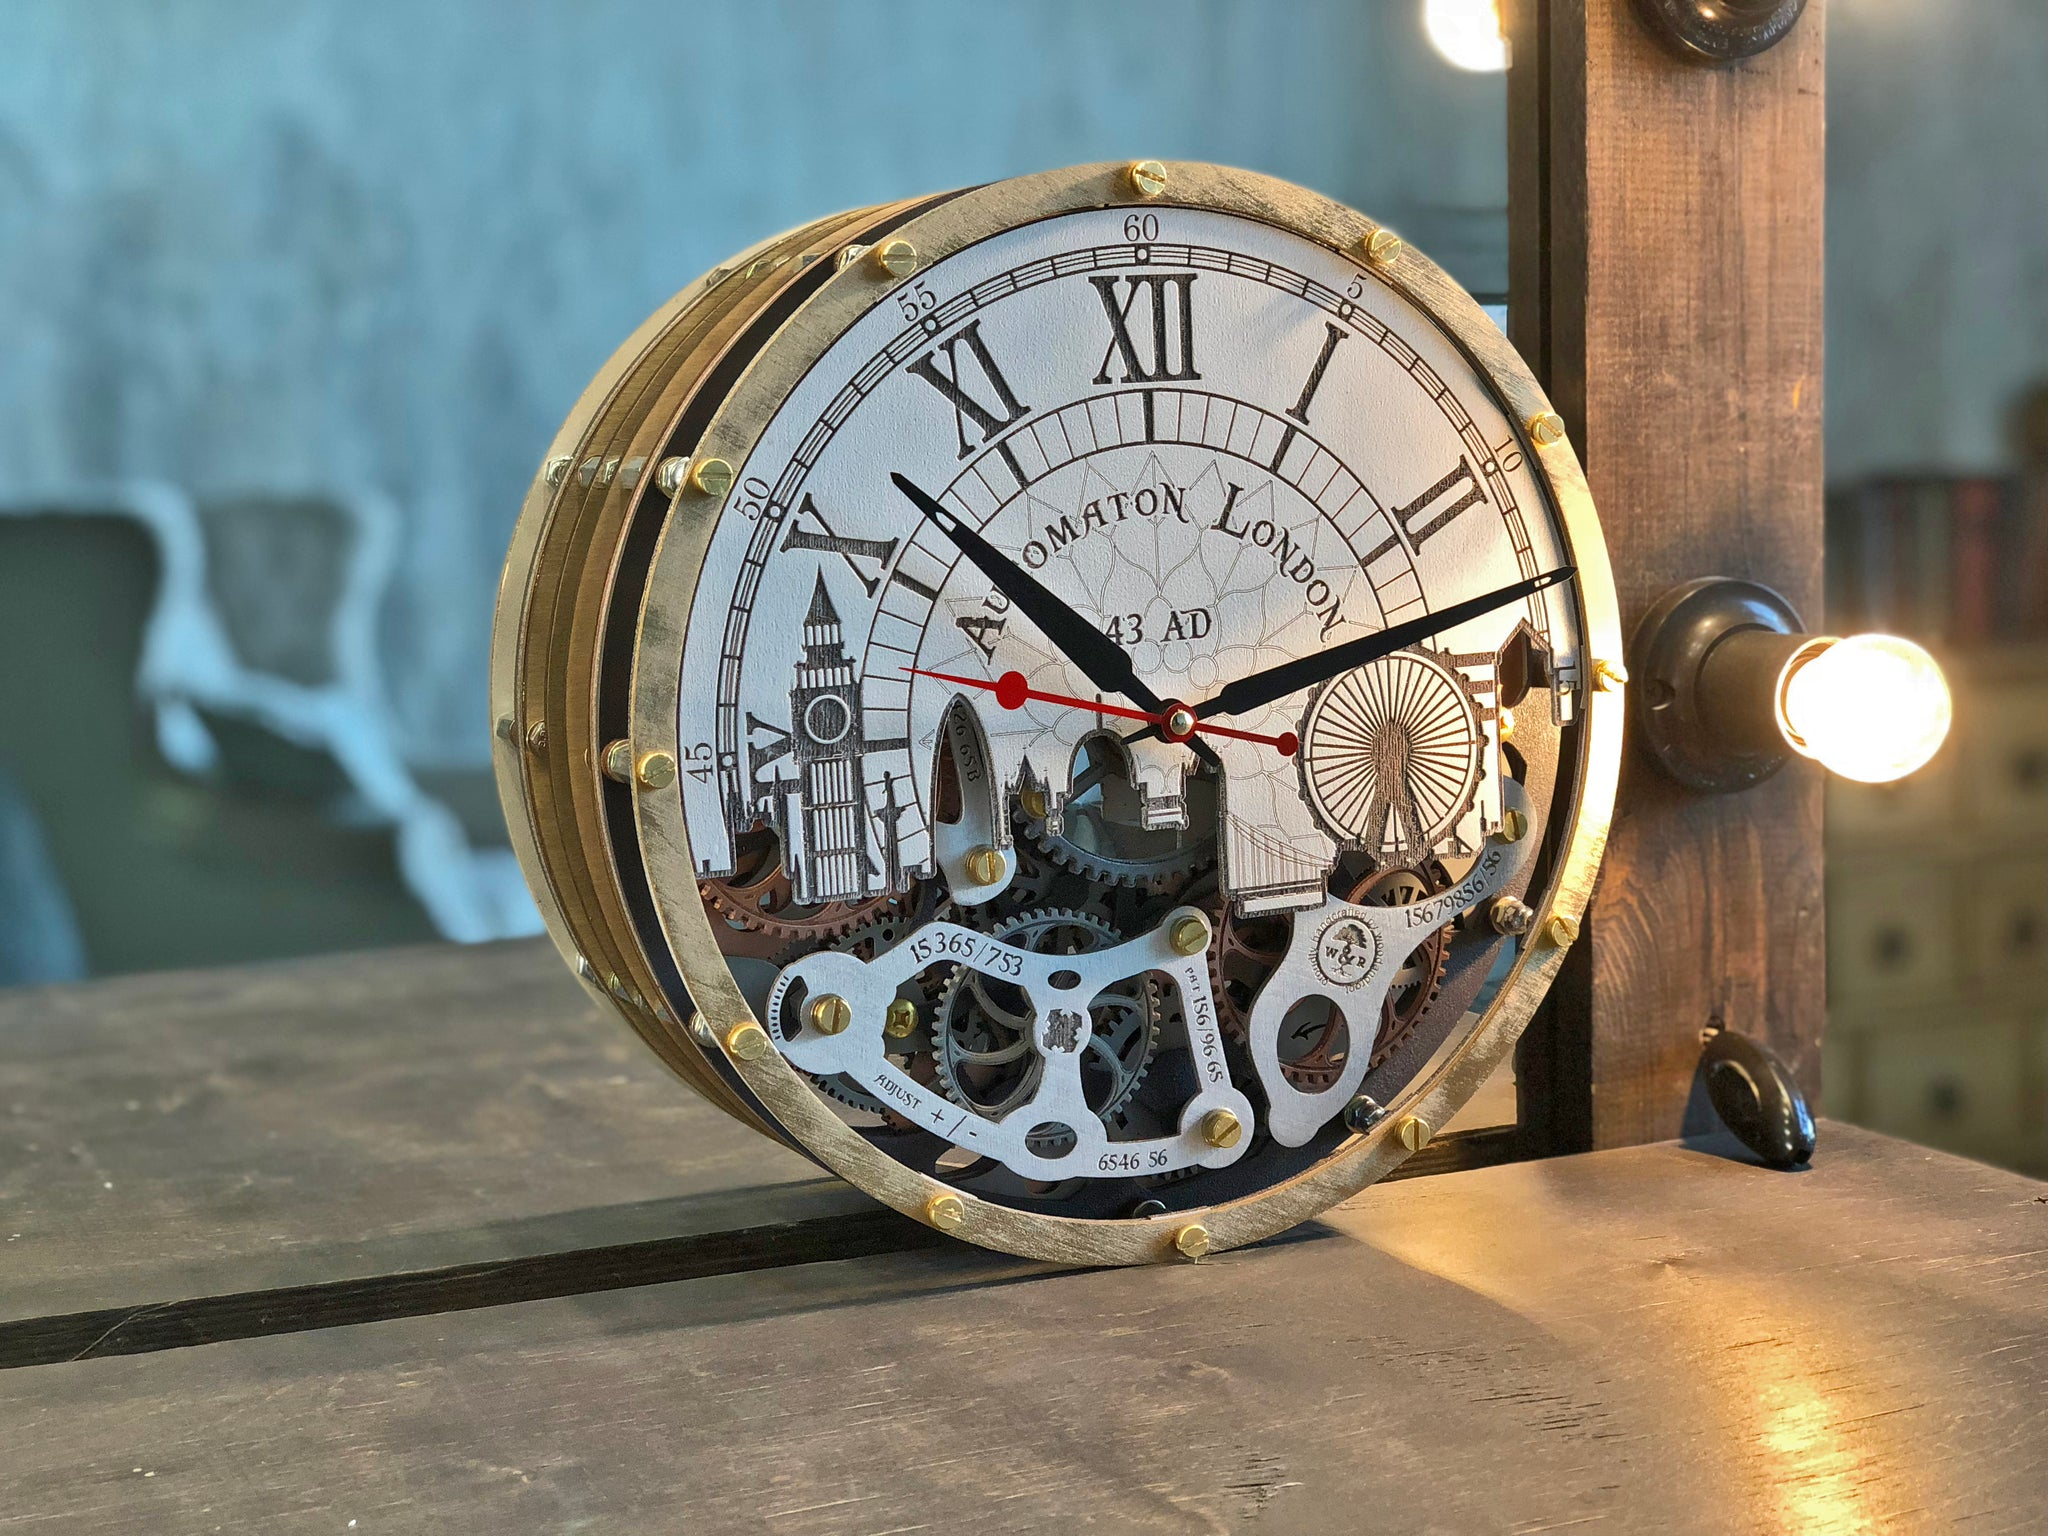 Automaton London 43AD Wall Clock - WOODANDROOT